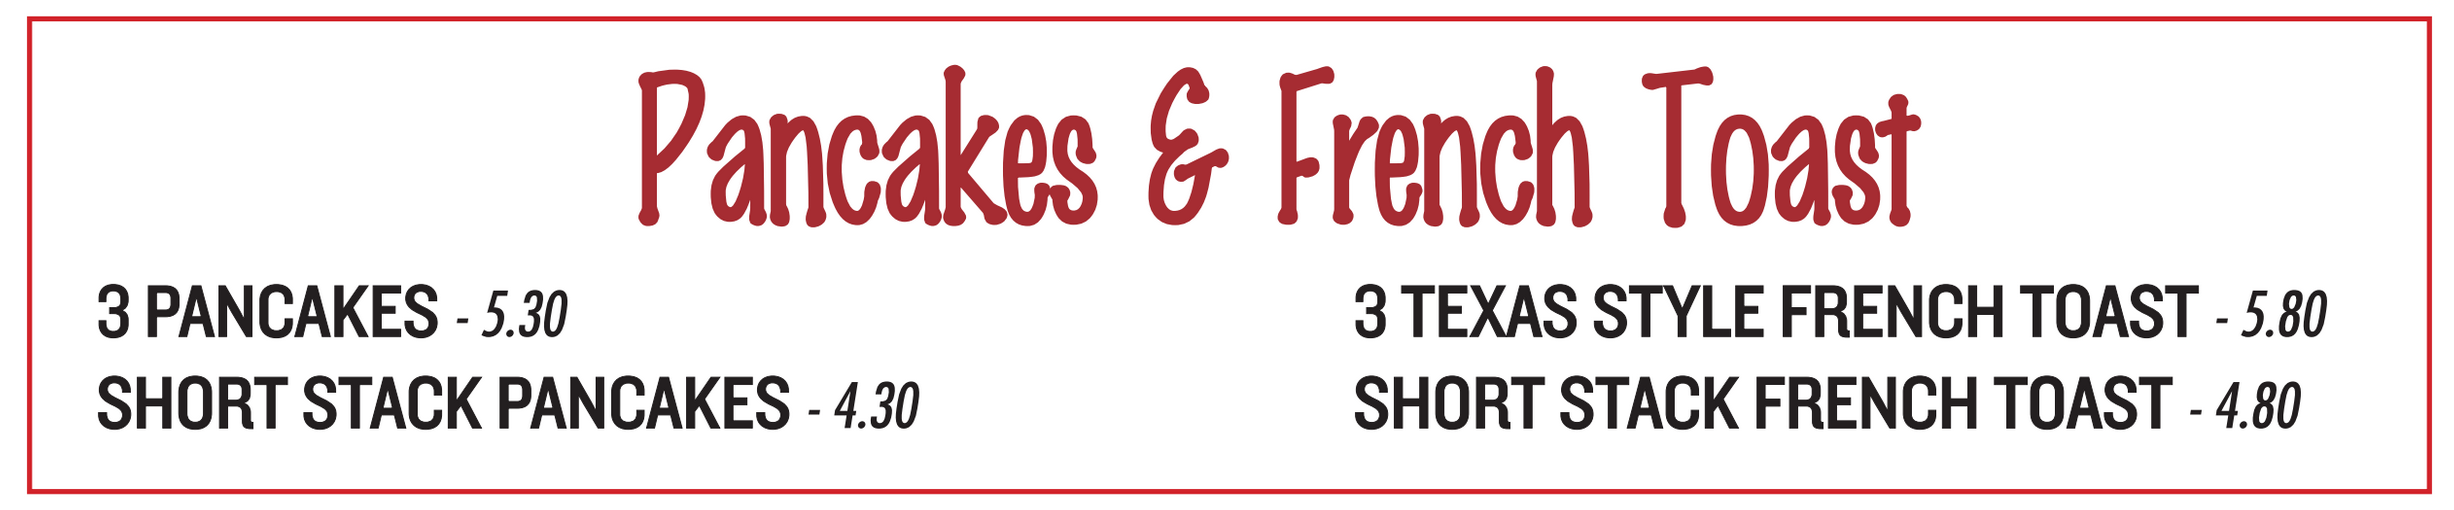 Picture: Pankages & French Toast; 3 Pancakes - $5.30, Short Stack Pancakes - $4.30, 3 Texas Style French Toast - $5.80, Short Stack French Toast - $4.80